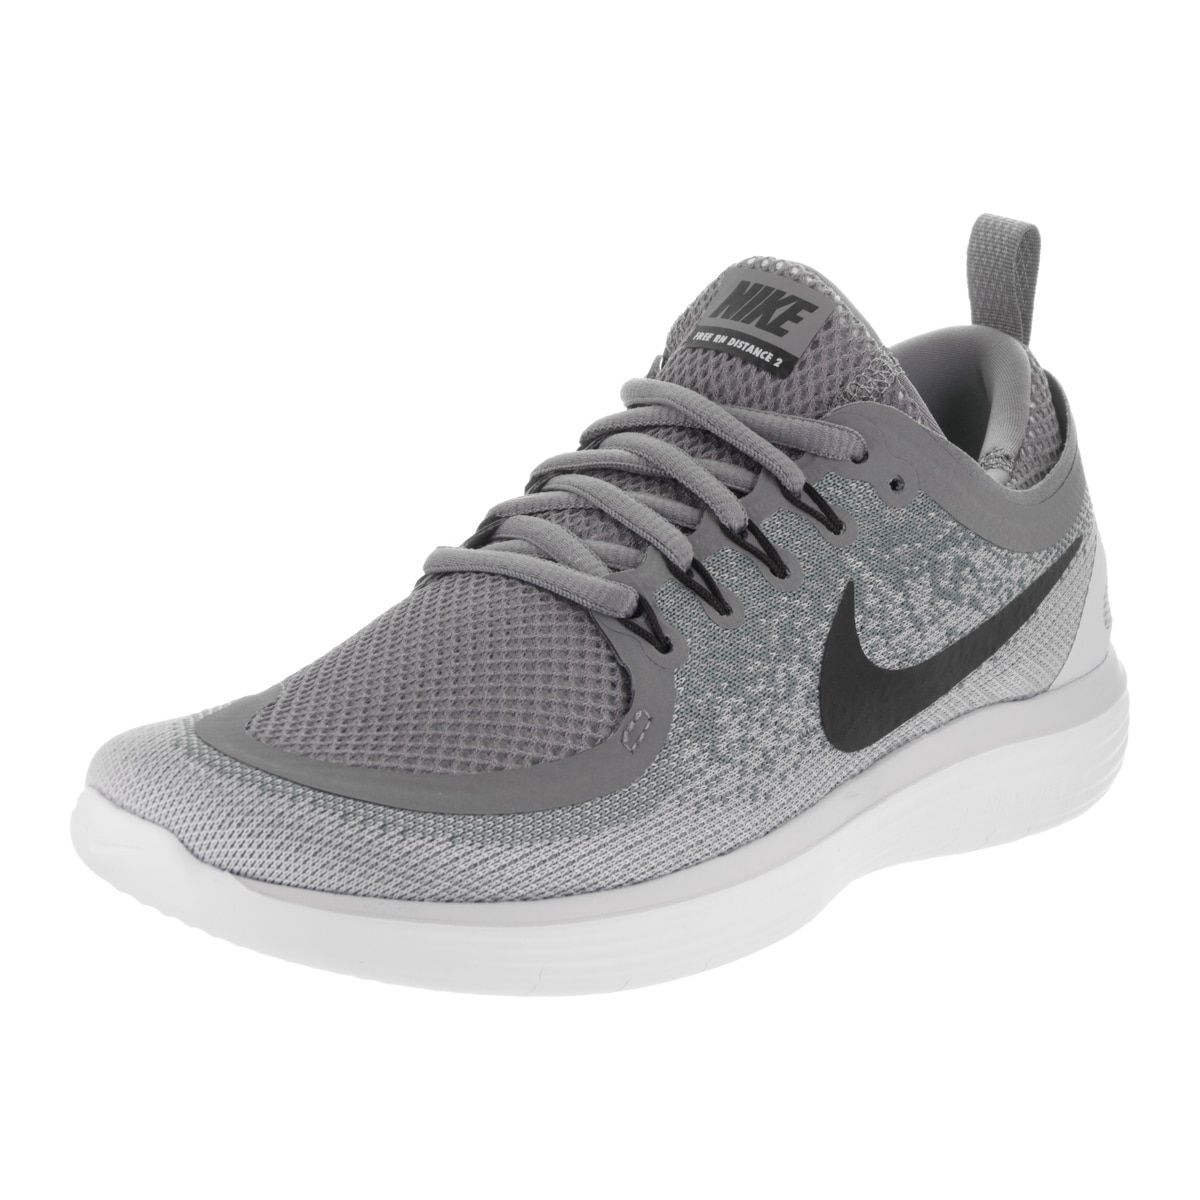 4352573aa09c Nike Women s Free Run Distance 2 Running Shoes by Nike